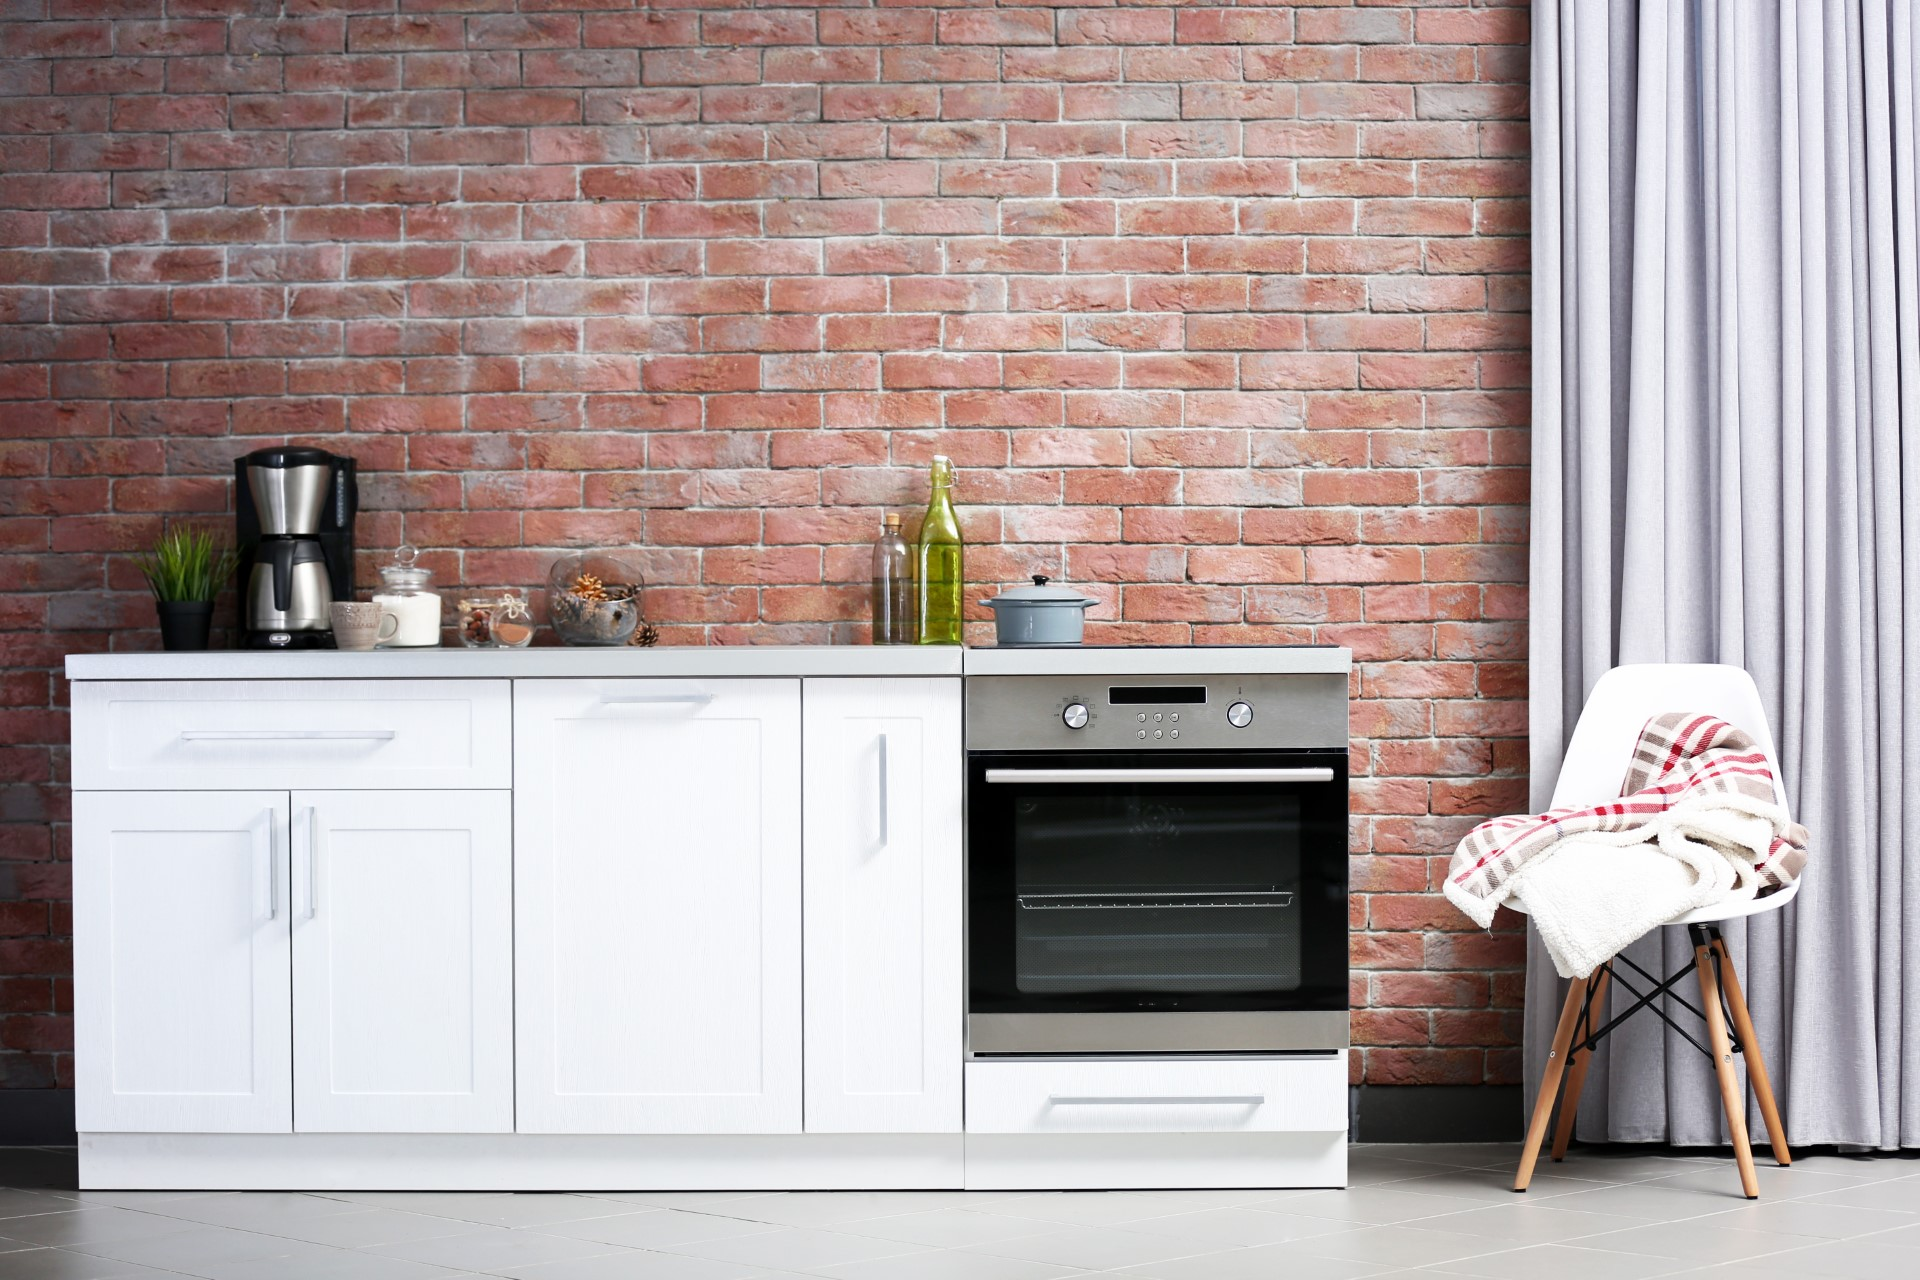 A stone wall is an excellent idea if you're going for an old-school Brooklyn type of feel. It really takes that contemporary to a new level if you can match it with adequate wood and stainless to get diversity through multiple elements.